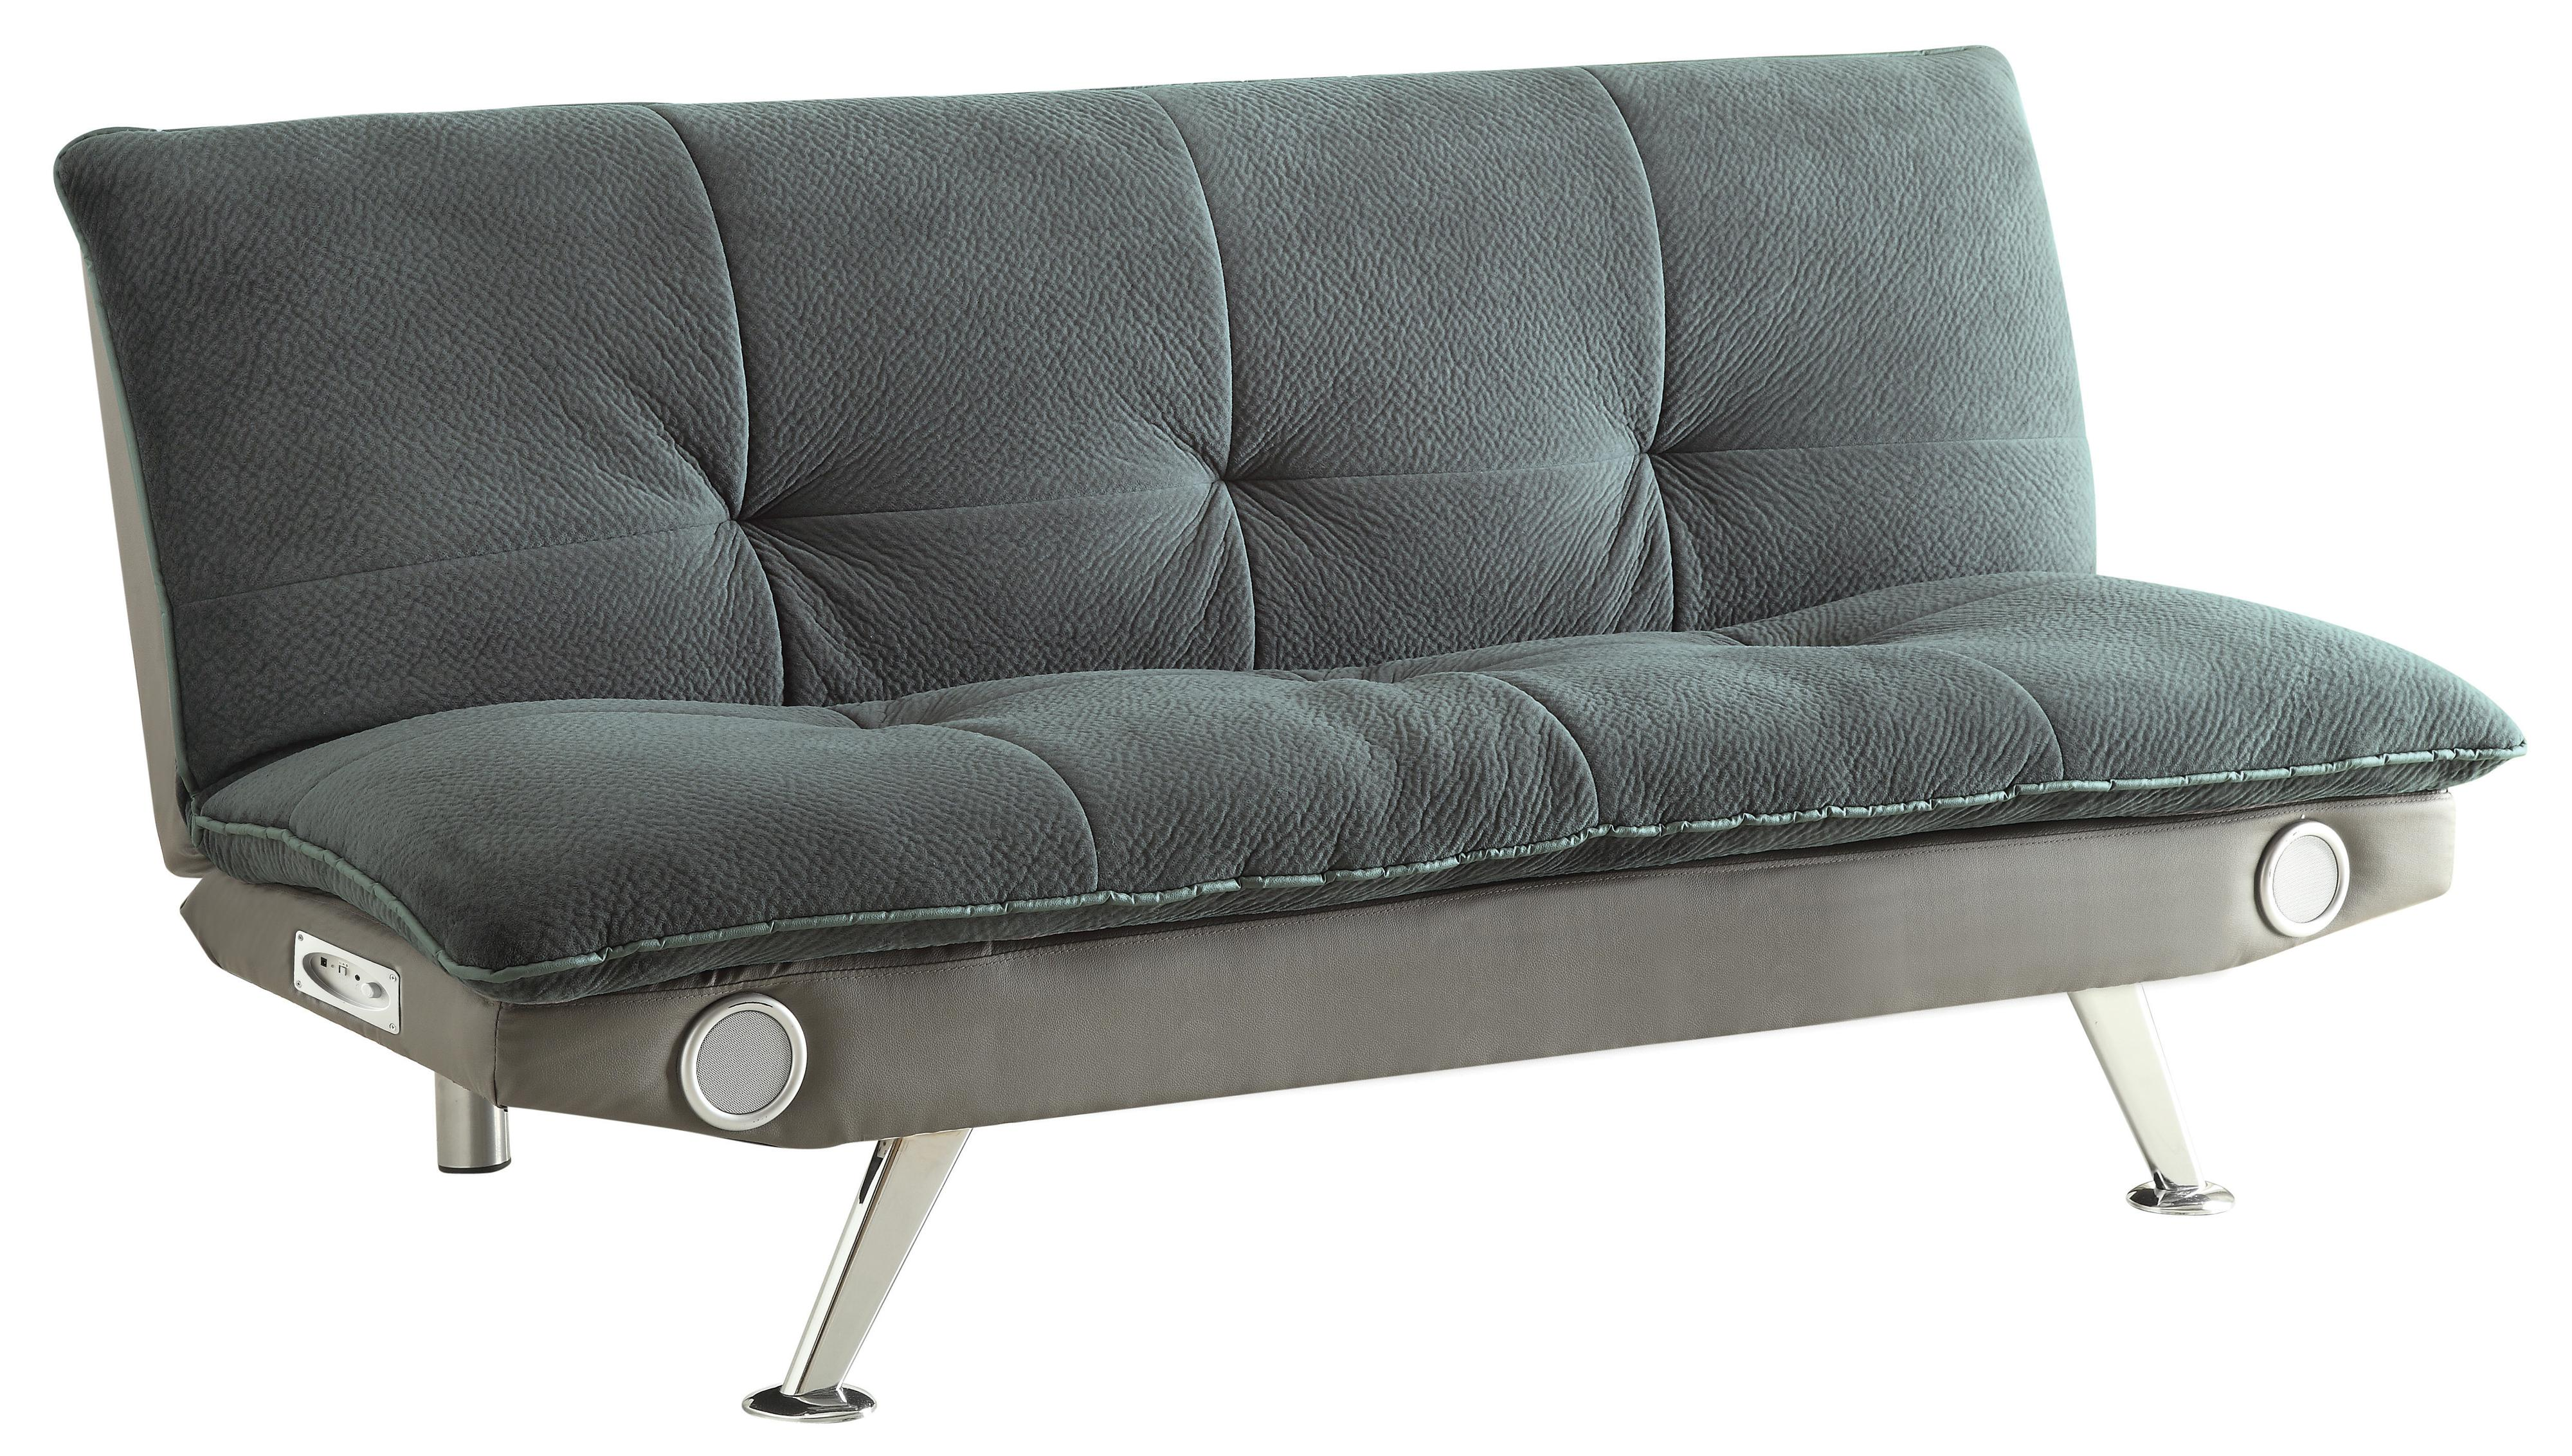 Coaster sofa beds and futons sofa bed with built in for Value city furniture sofa bed